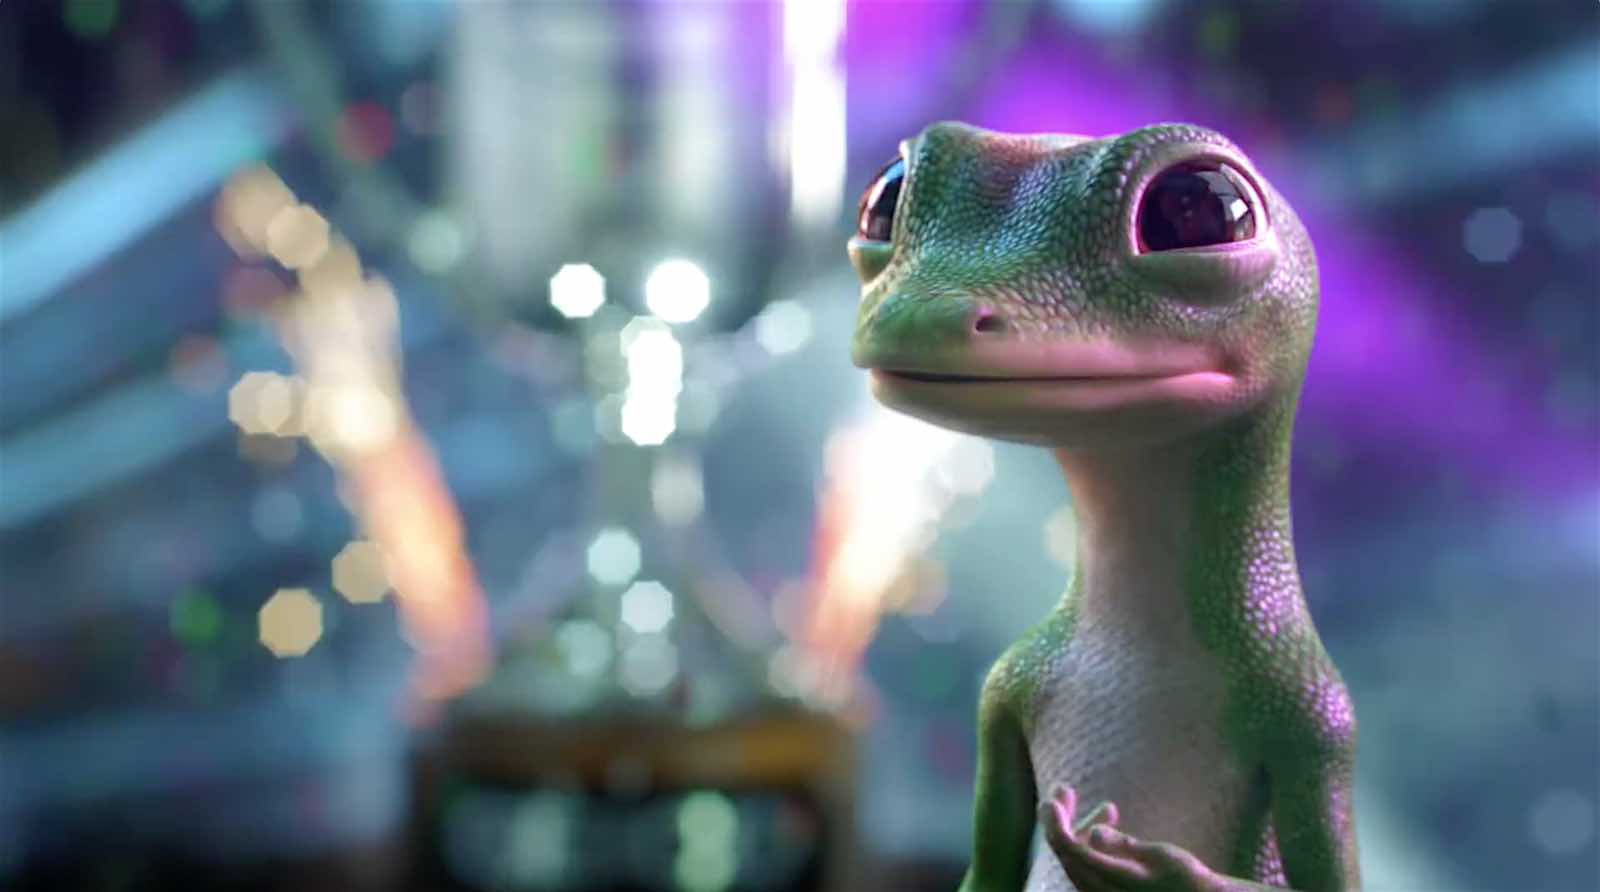 How to Make a Commercial People Won't Skip Through - Geico Gecko